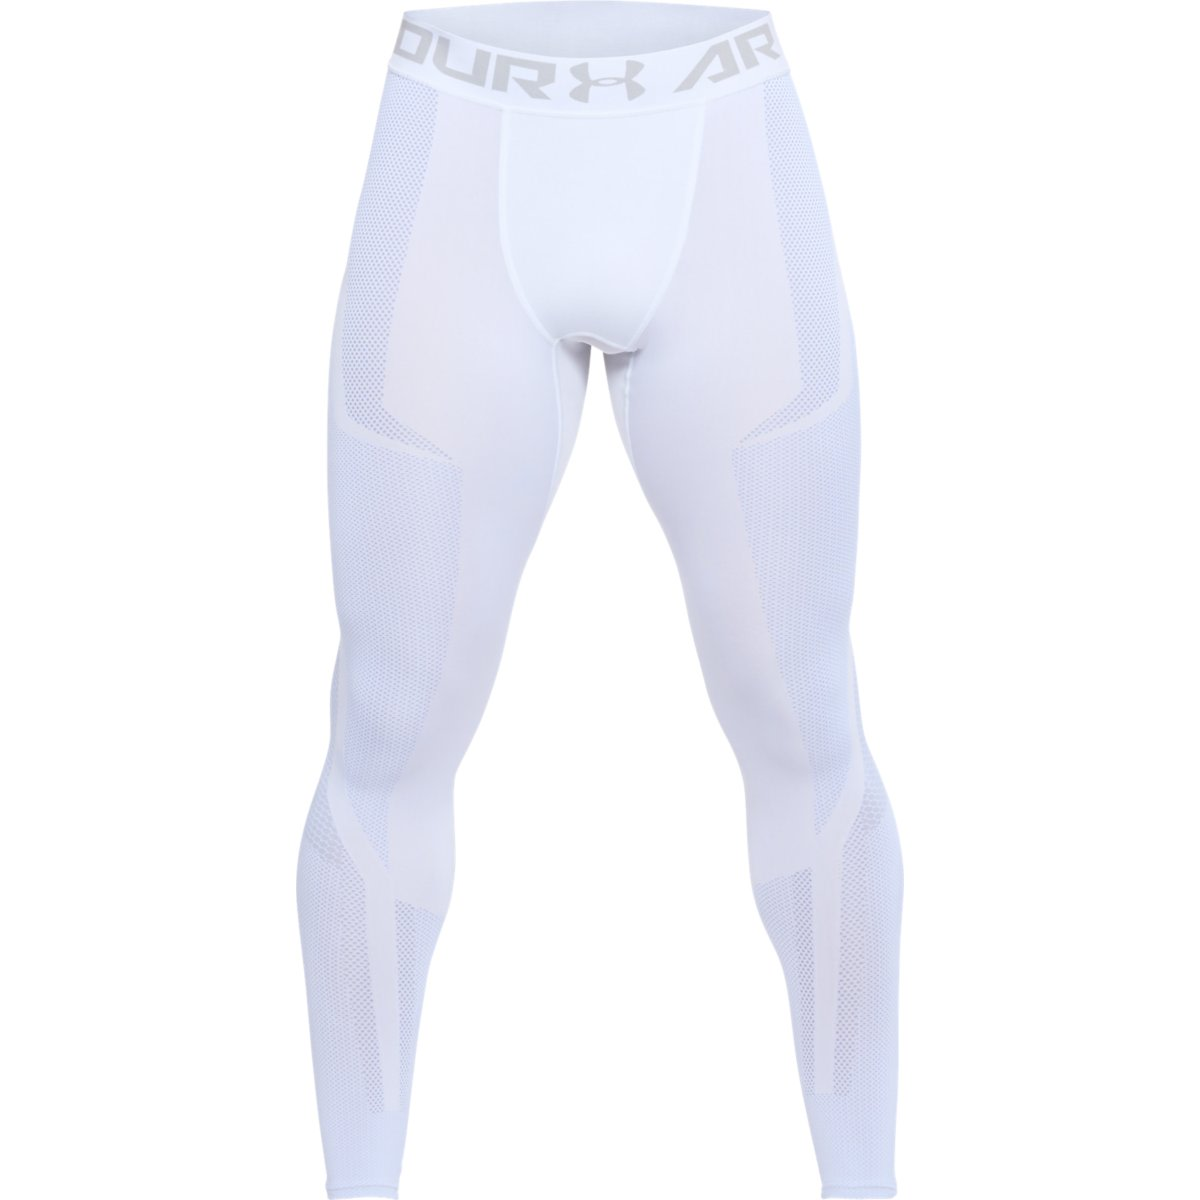 ac434f958bb6c5 Under Armour Threadborne Seamless Legging - Running trousers for Men -  White | 21RUN